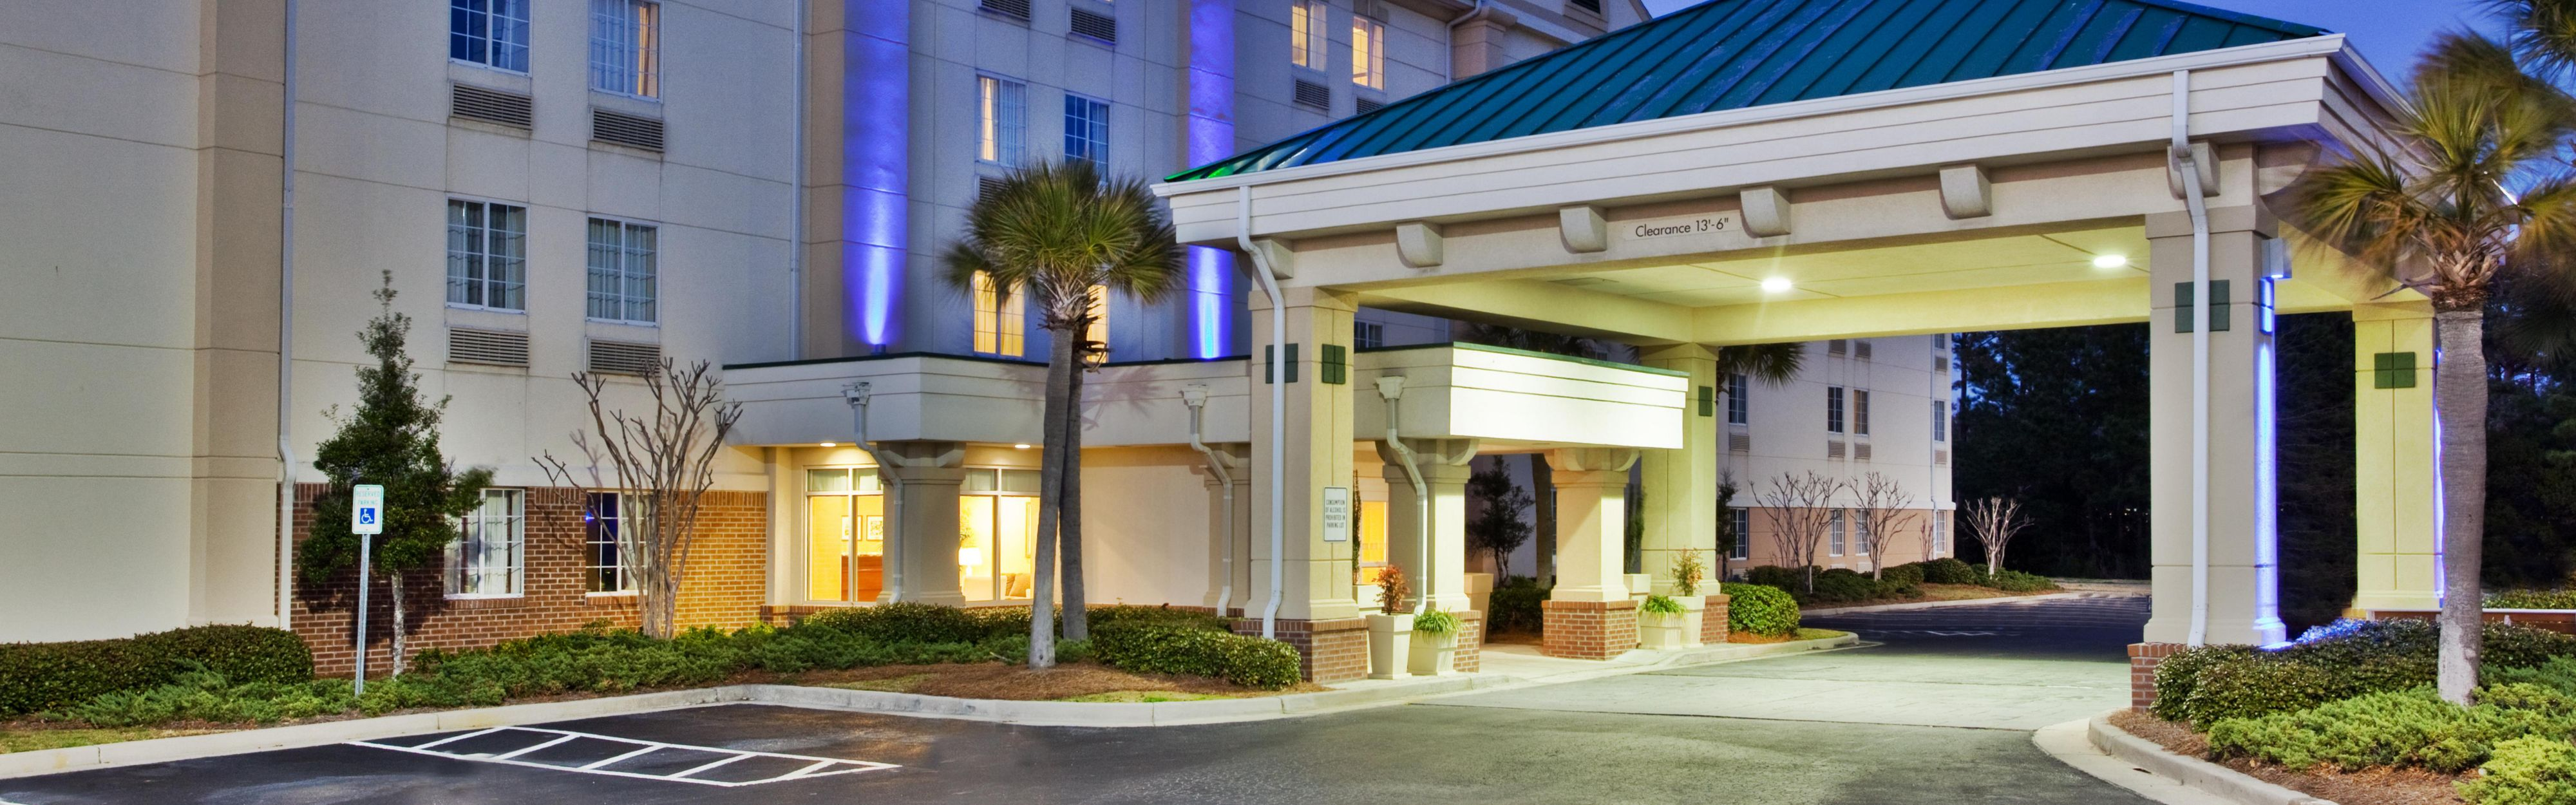 Holiday Inn Express Myrtle Beach-Broadway@The Bch image 0